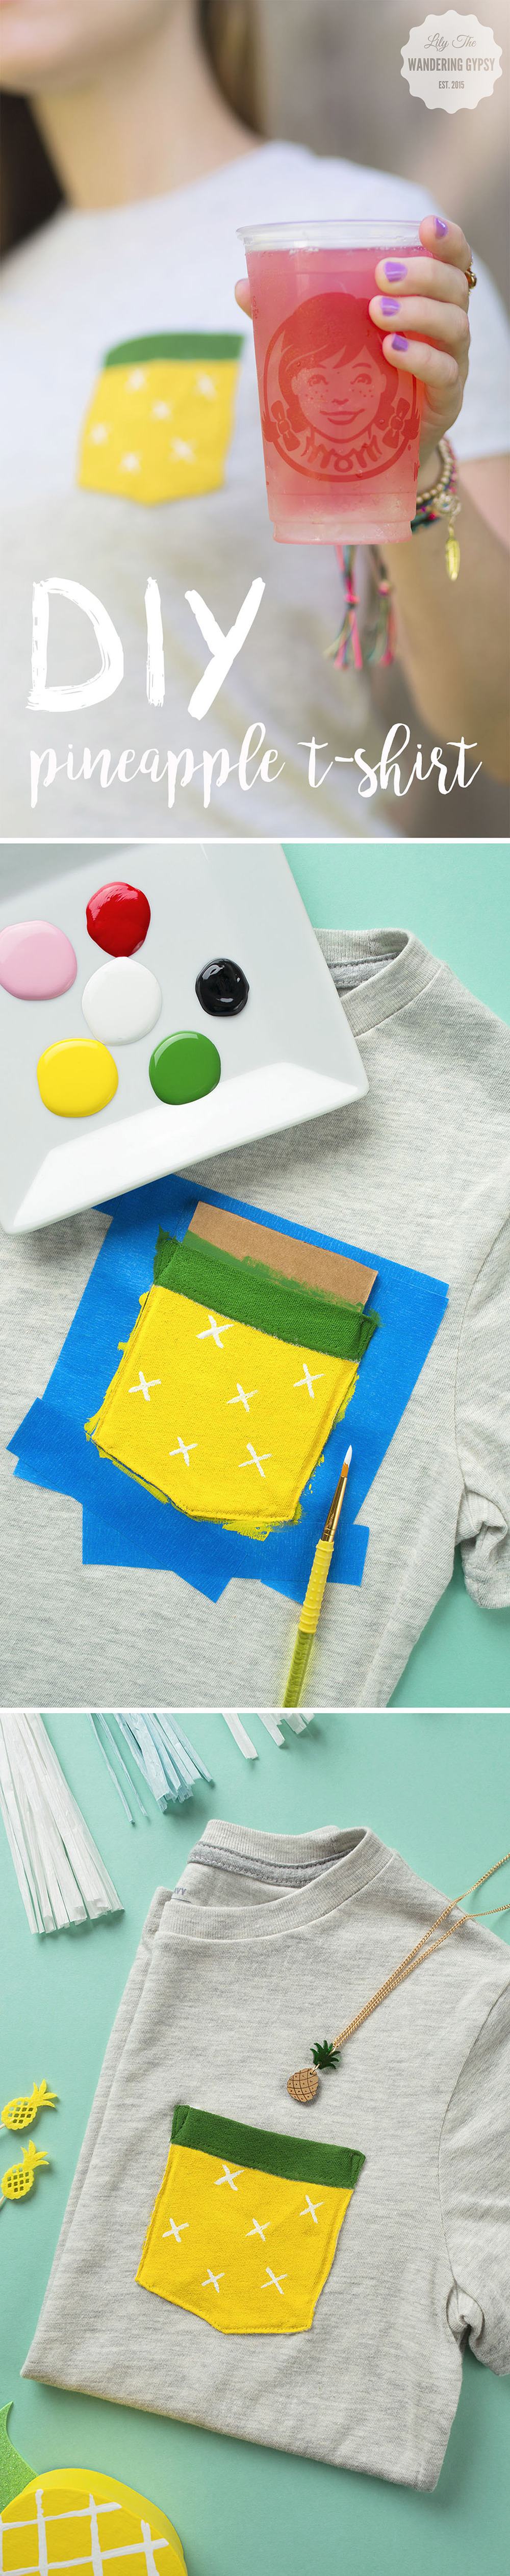 DIY Pineapple Pocket Tee